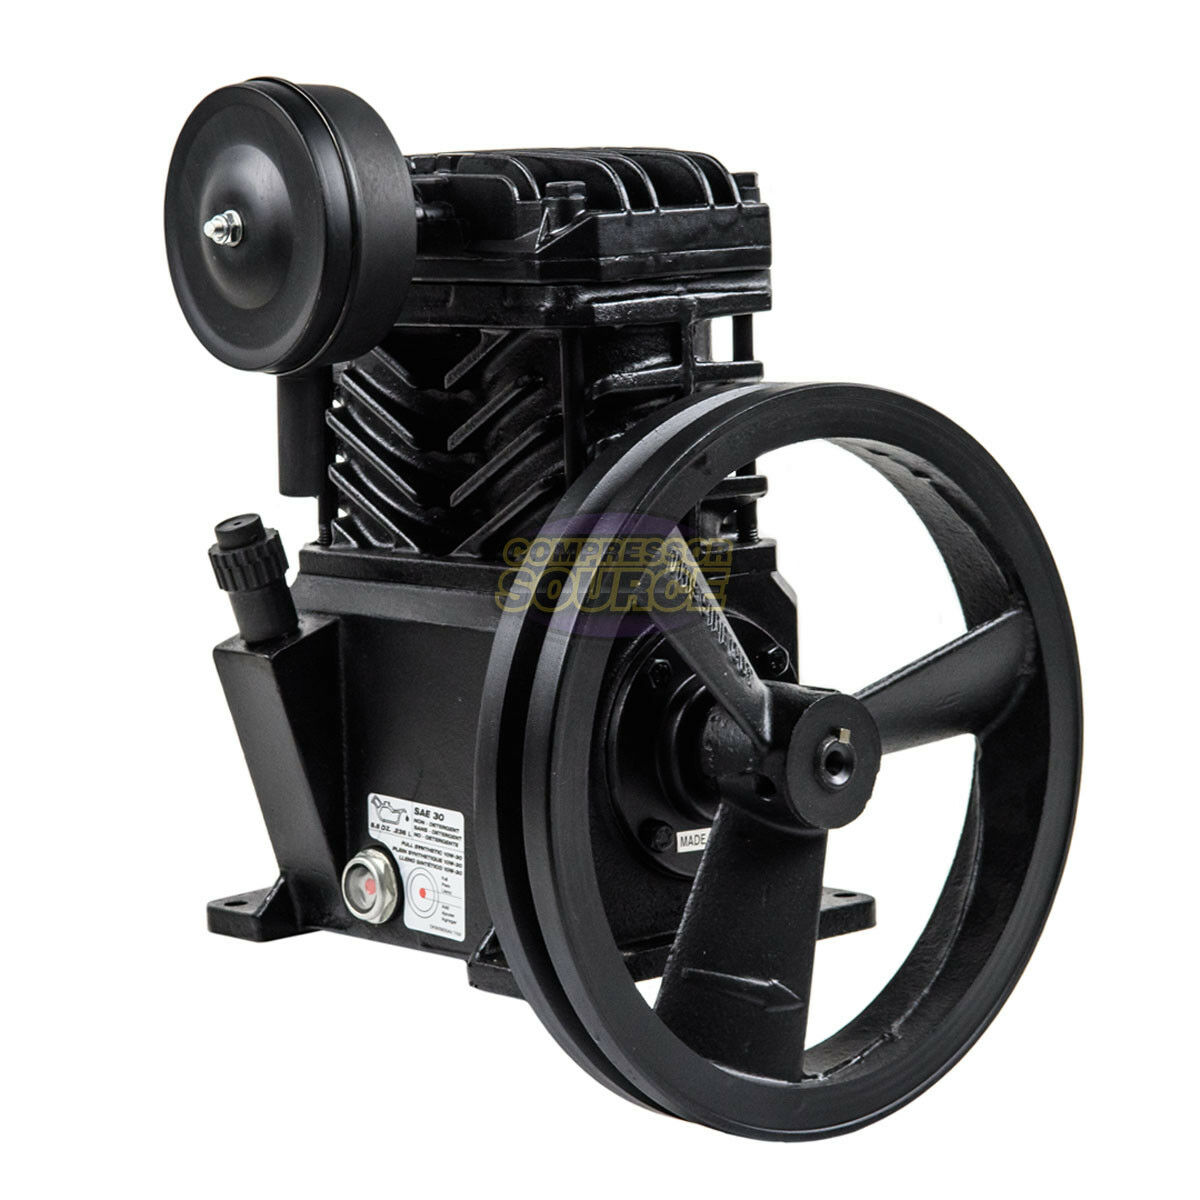 3HP Replacement Air Compressor Pump for Campbell Hausfeld VT4923 Cast Iron. Buy it now for 239.95